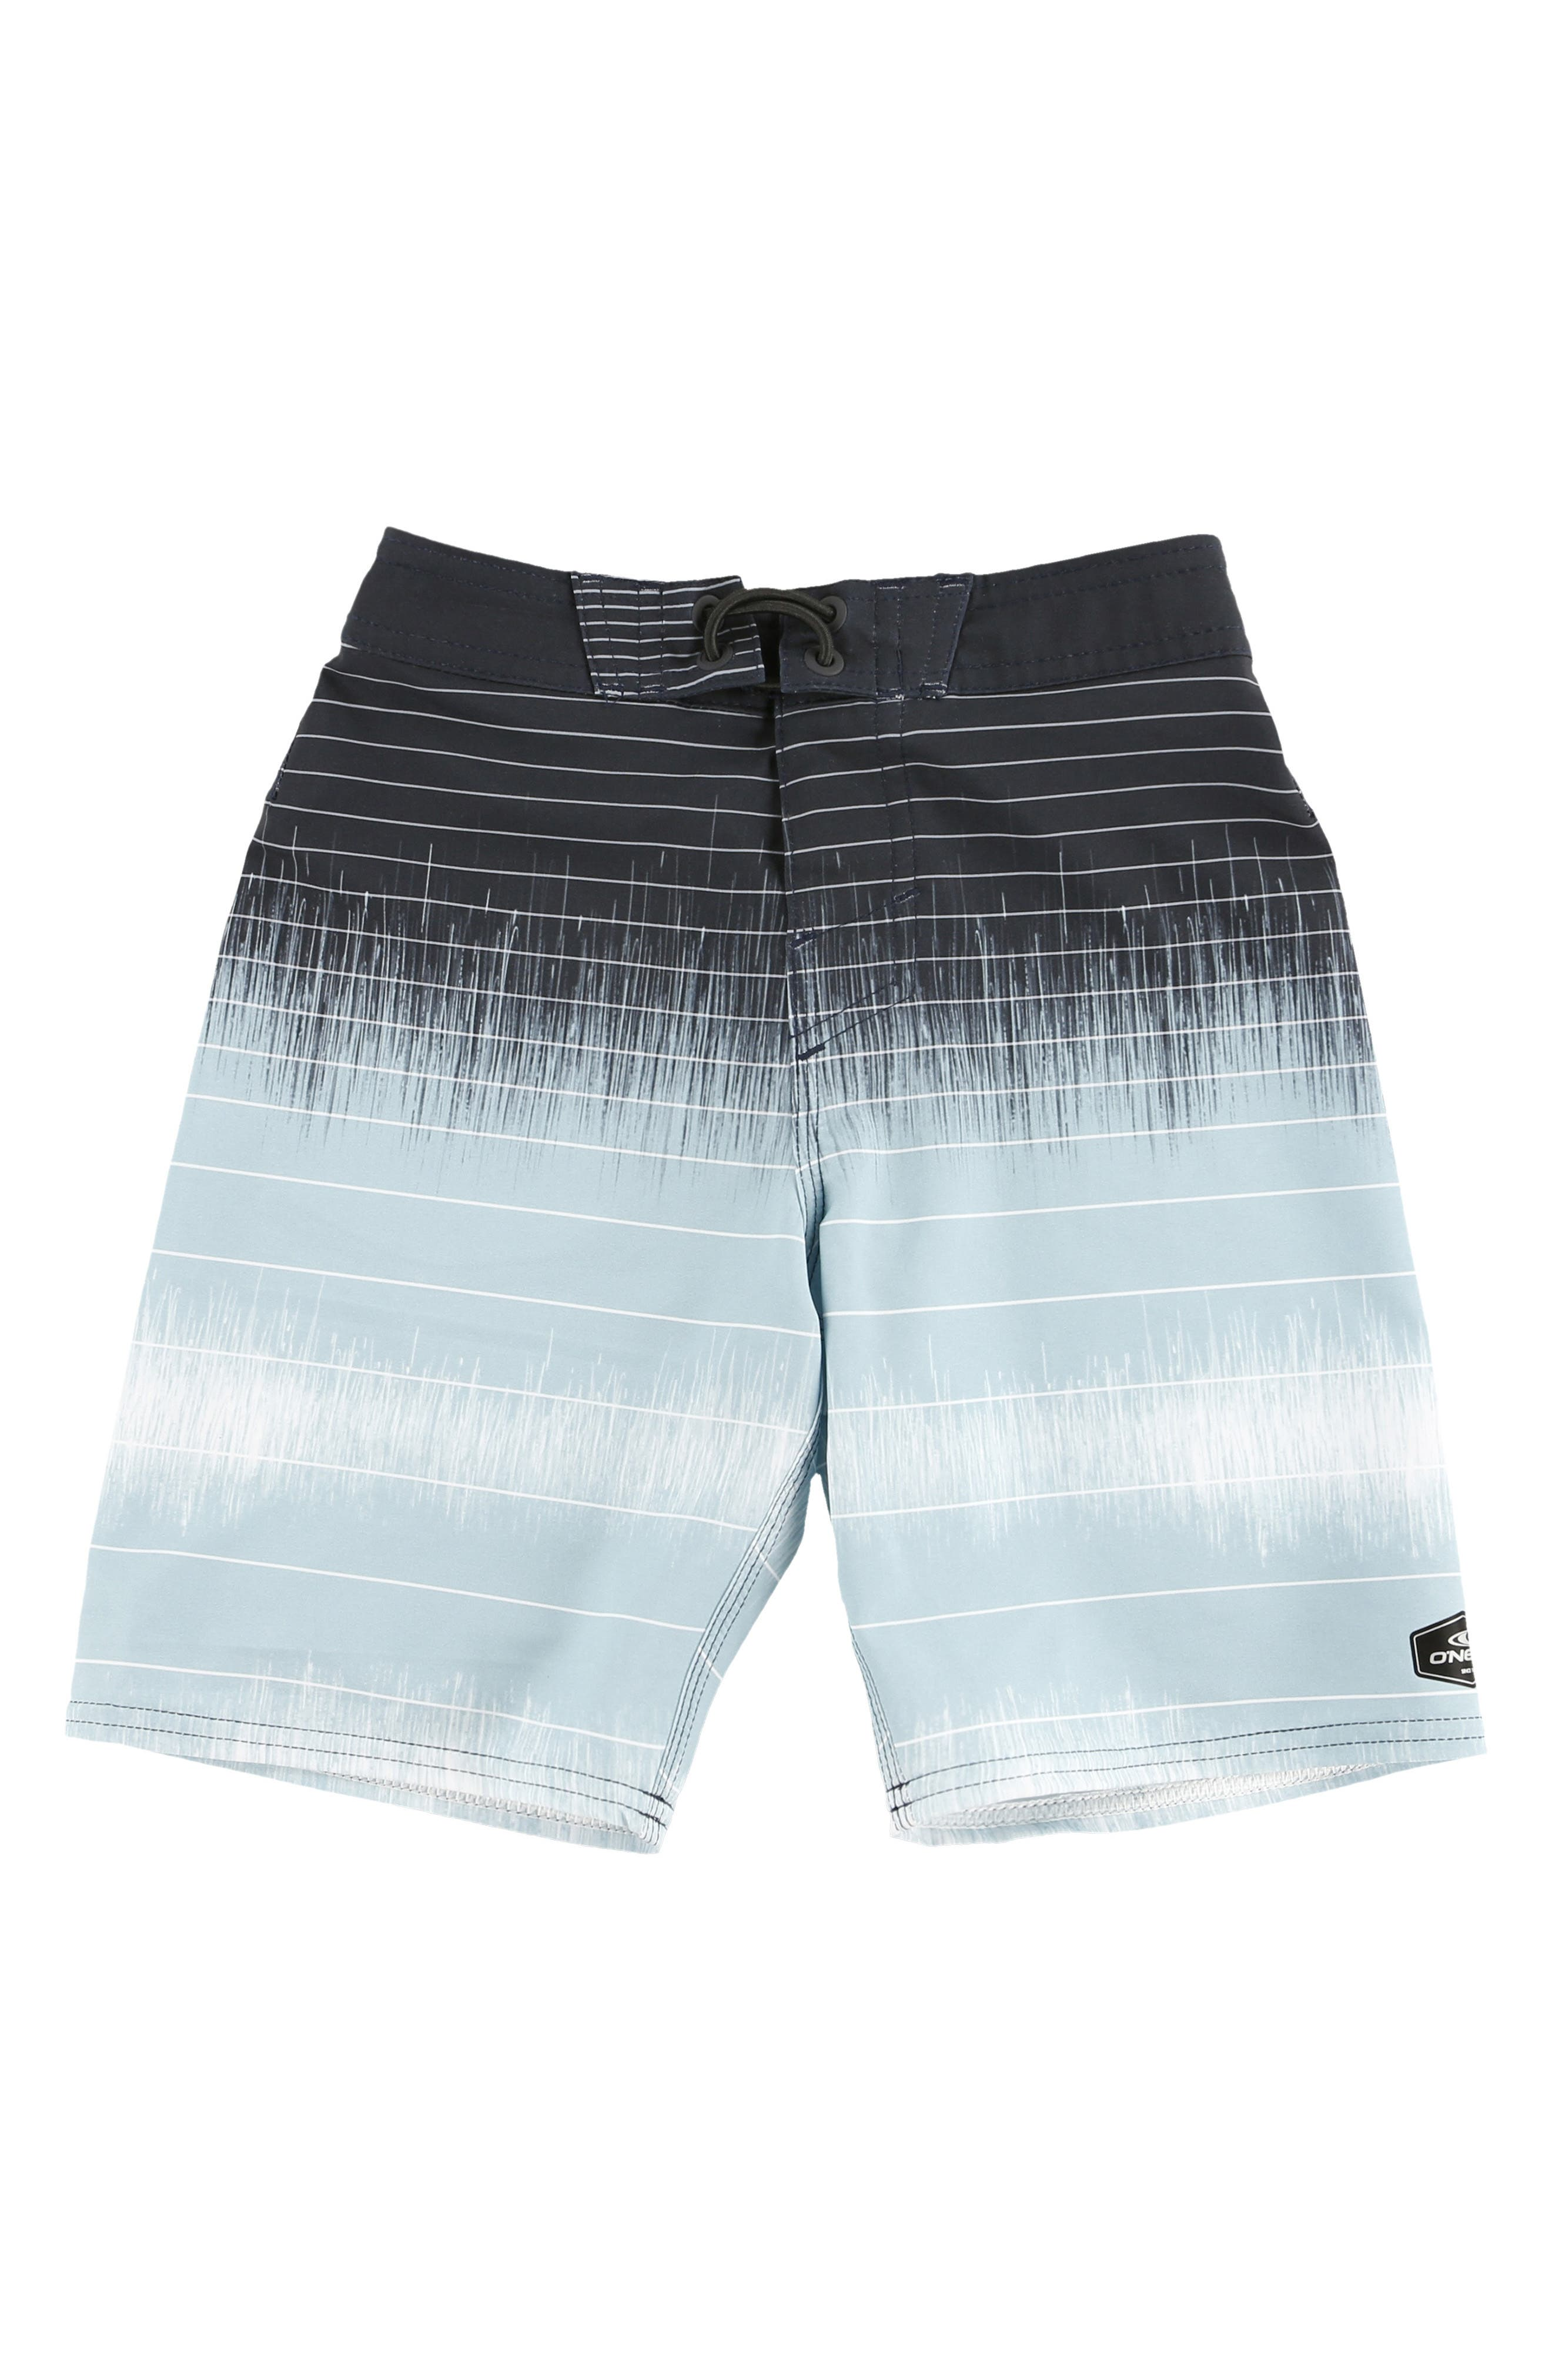 Hyperfreak Seismic Board Shorts,                         Main,                         color, 400